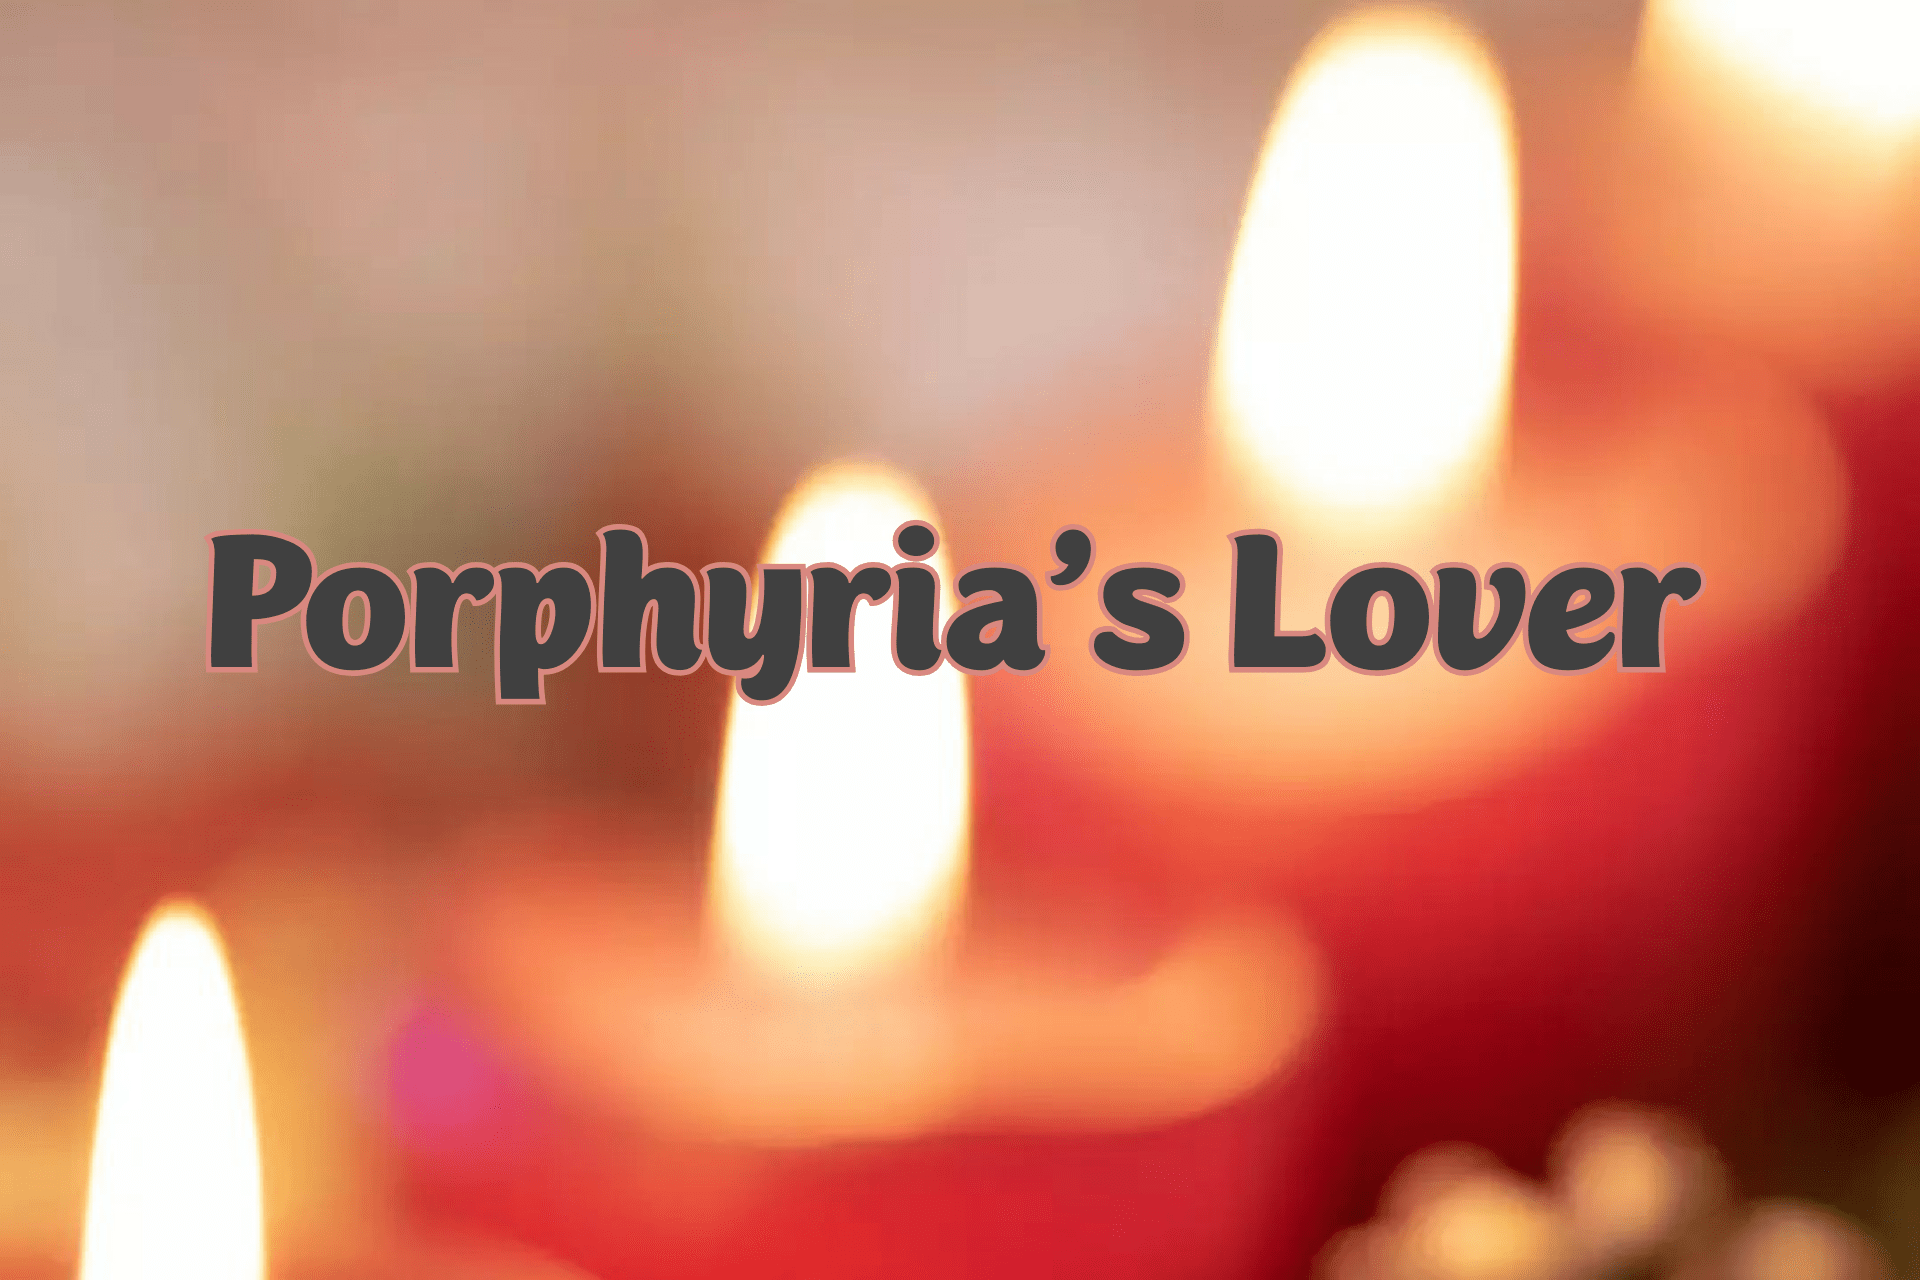 Porphyria's Lover: Summary, Analysis and Questions 13